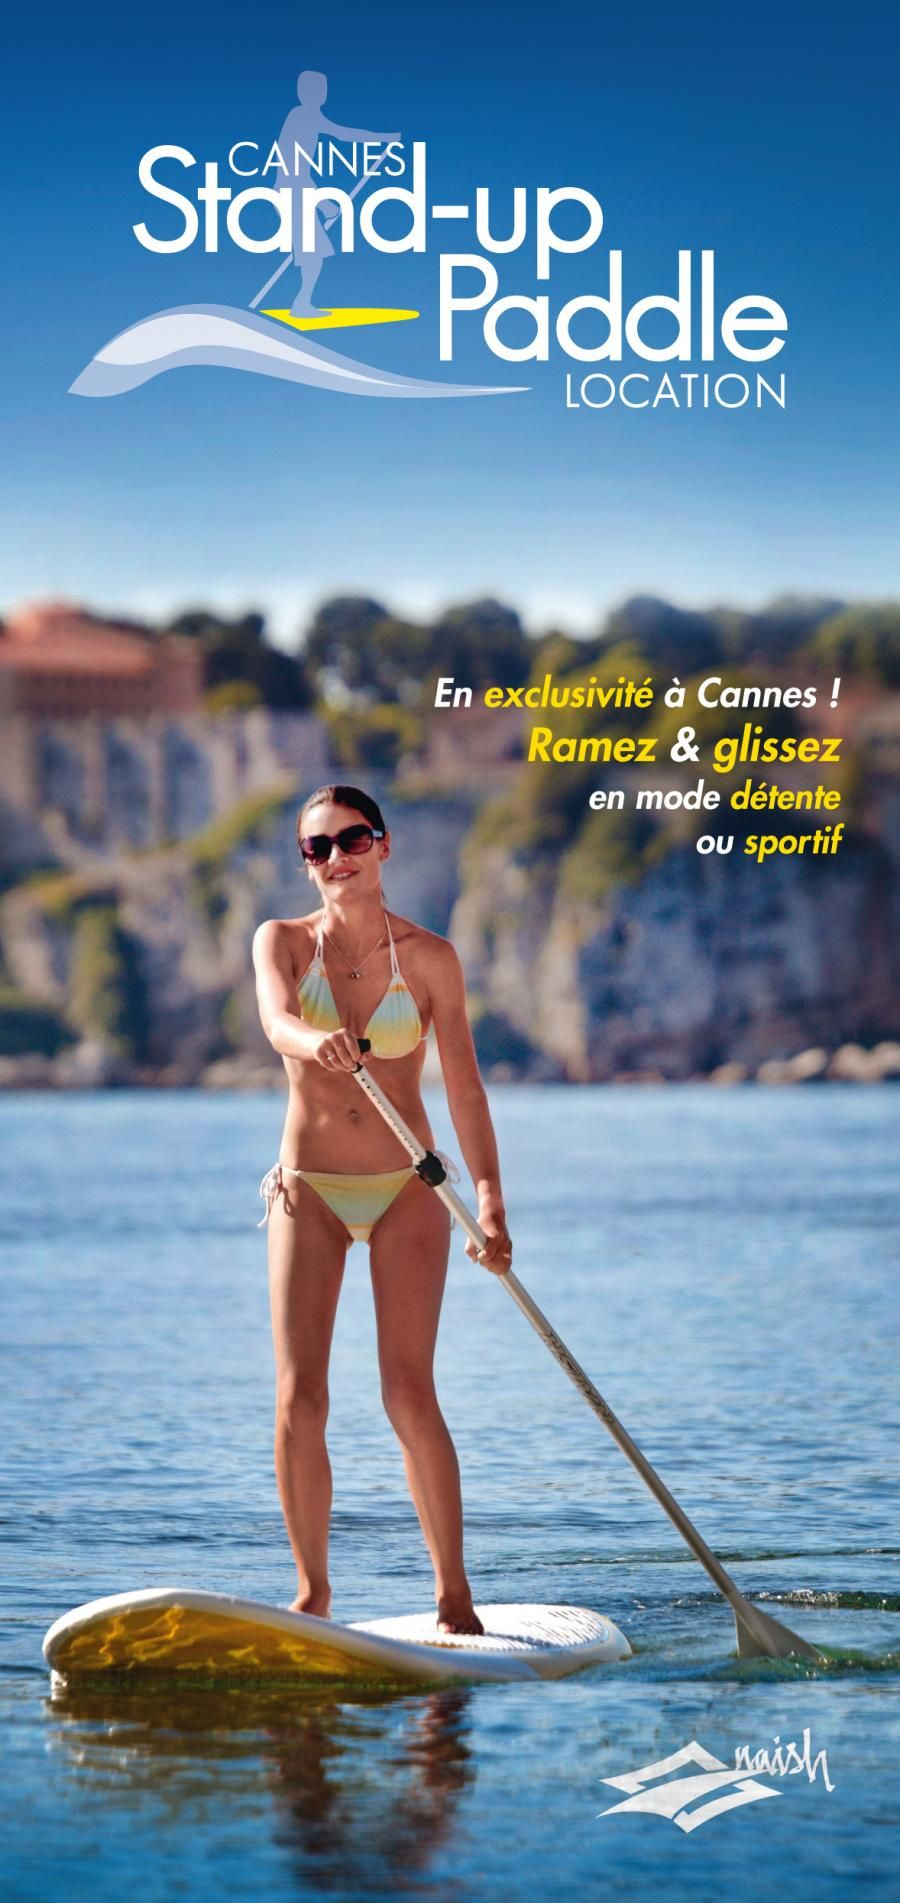 Cannes stand up paddle location